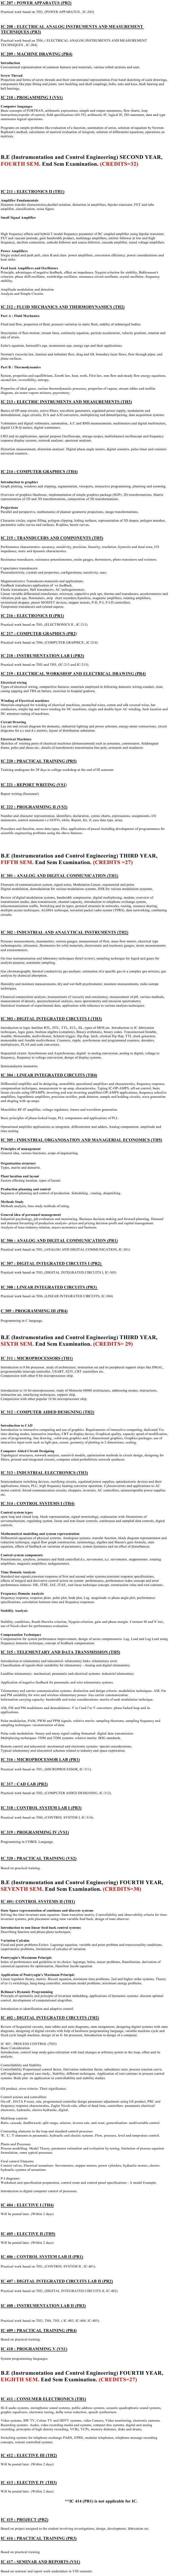 NSIT: Syllabus - Instrumentation and Control Engineering